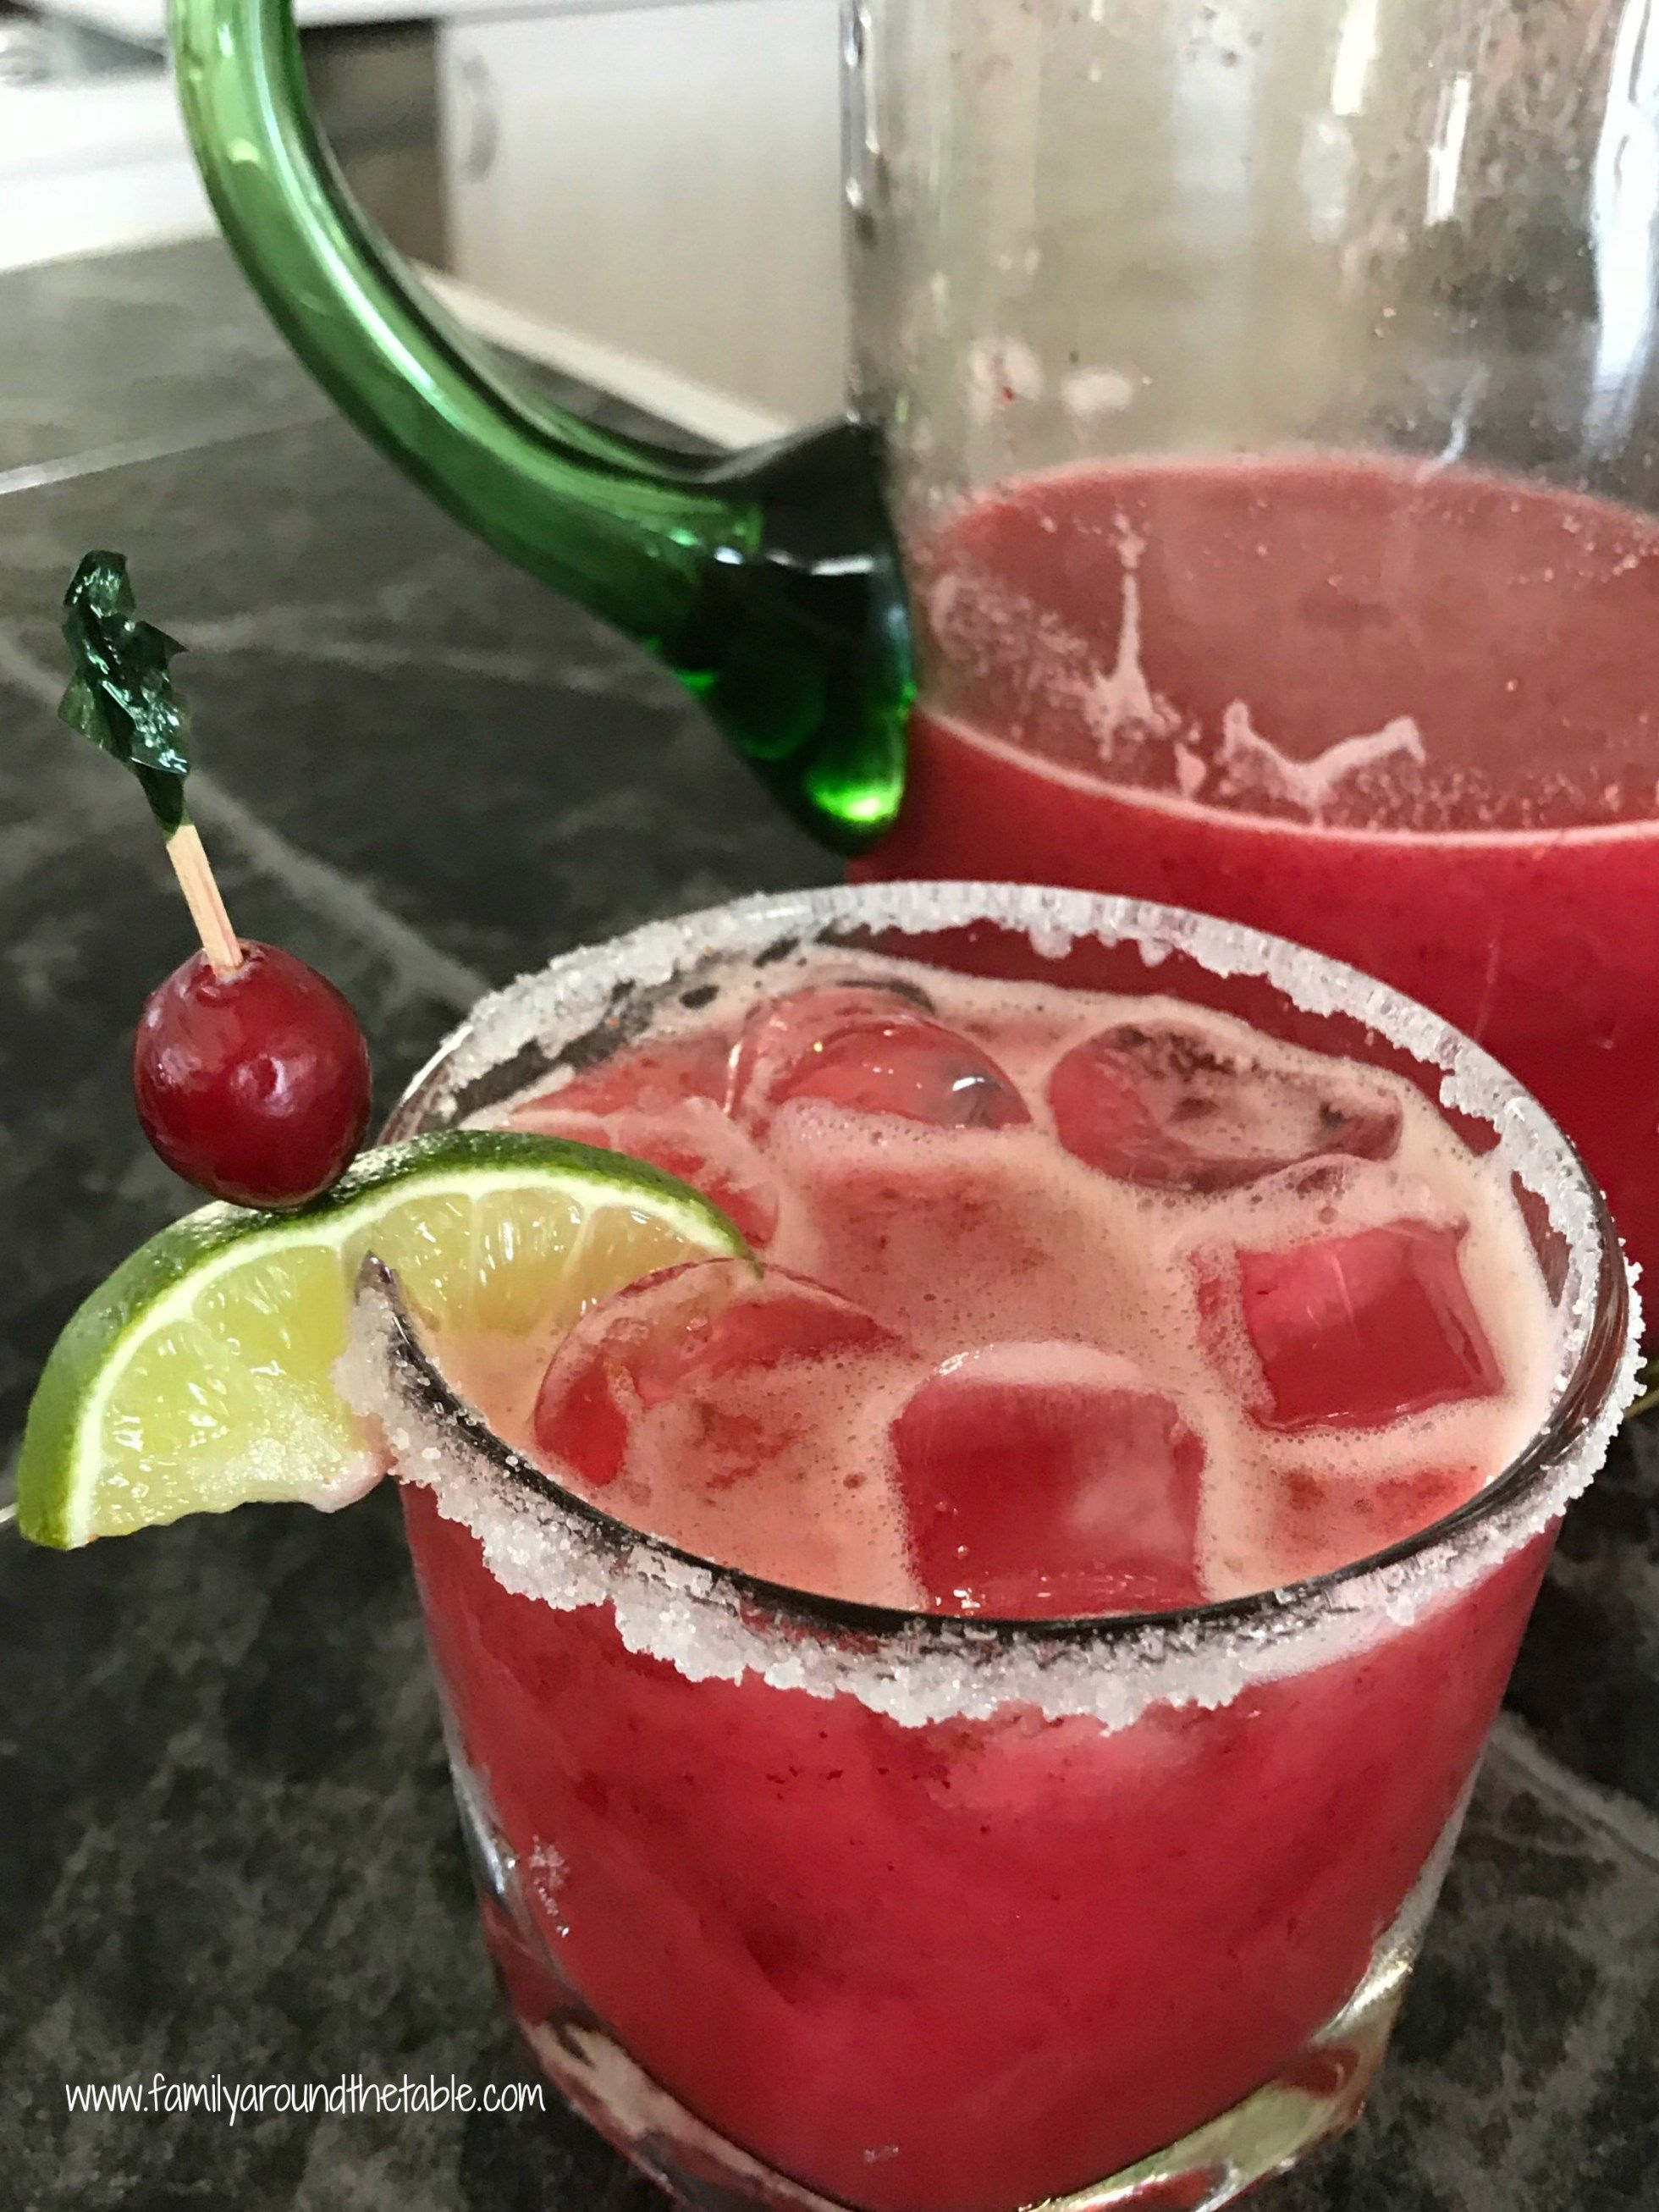 Cranberry Lime Margarita #limemargarita Cranberry Lime Margaritas • Family Around the Table #limemargarita Cranberry Lime Margarita #limemargarita Cranberry Lime Margaritas • Family Around the Table #limemargarita Cranberry Lime Margarita #limemargarita Cranberry Lime Margaritas • Family Around the Table #limemargarita Cranberry Lime Margarita #limemargarita Cranberry Lime Margaritas • Family Around the Table #limemargarita Cranberry Lime Margarita #limemargarita Cranberry Lime Margarita #limemargarita